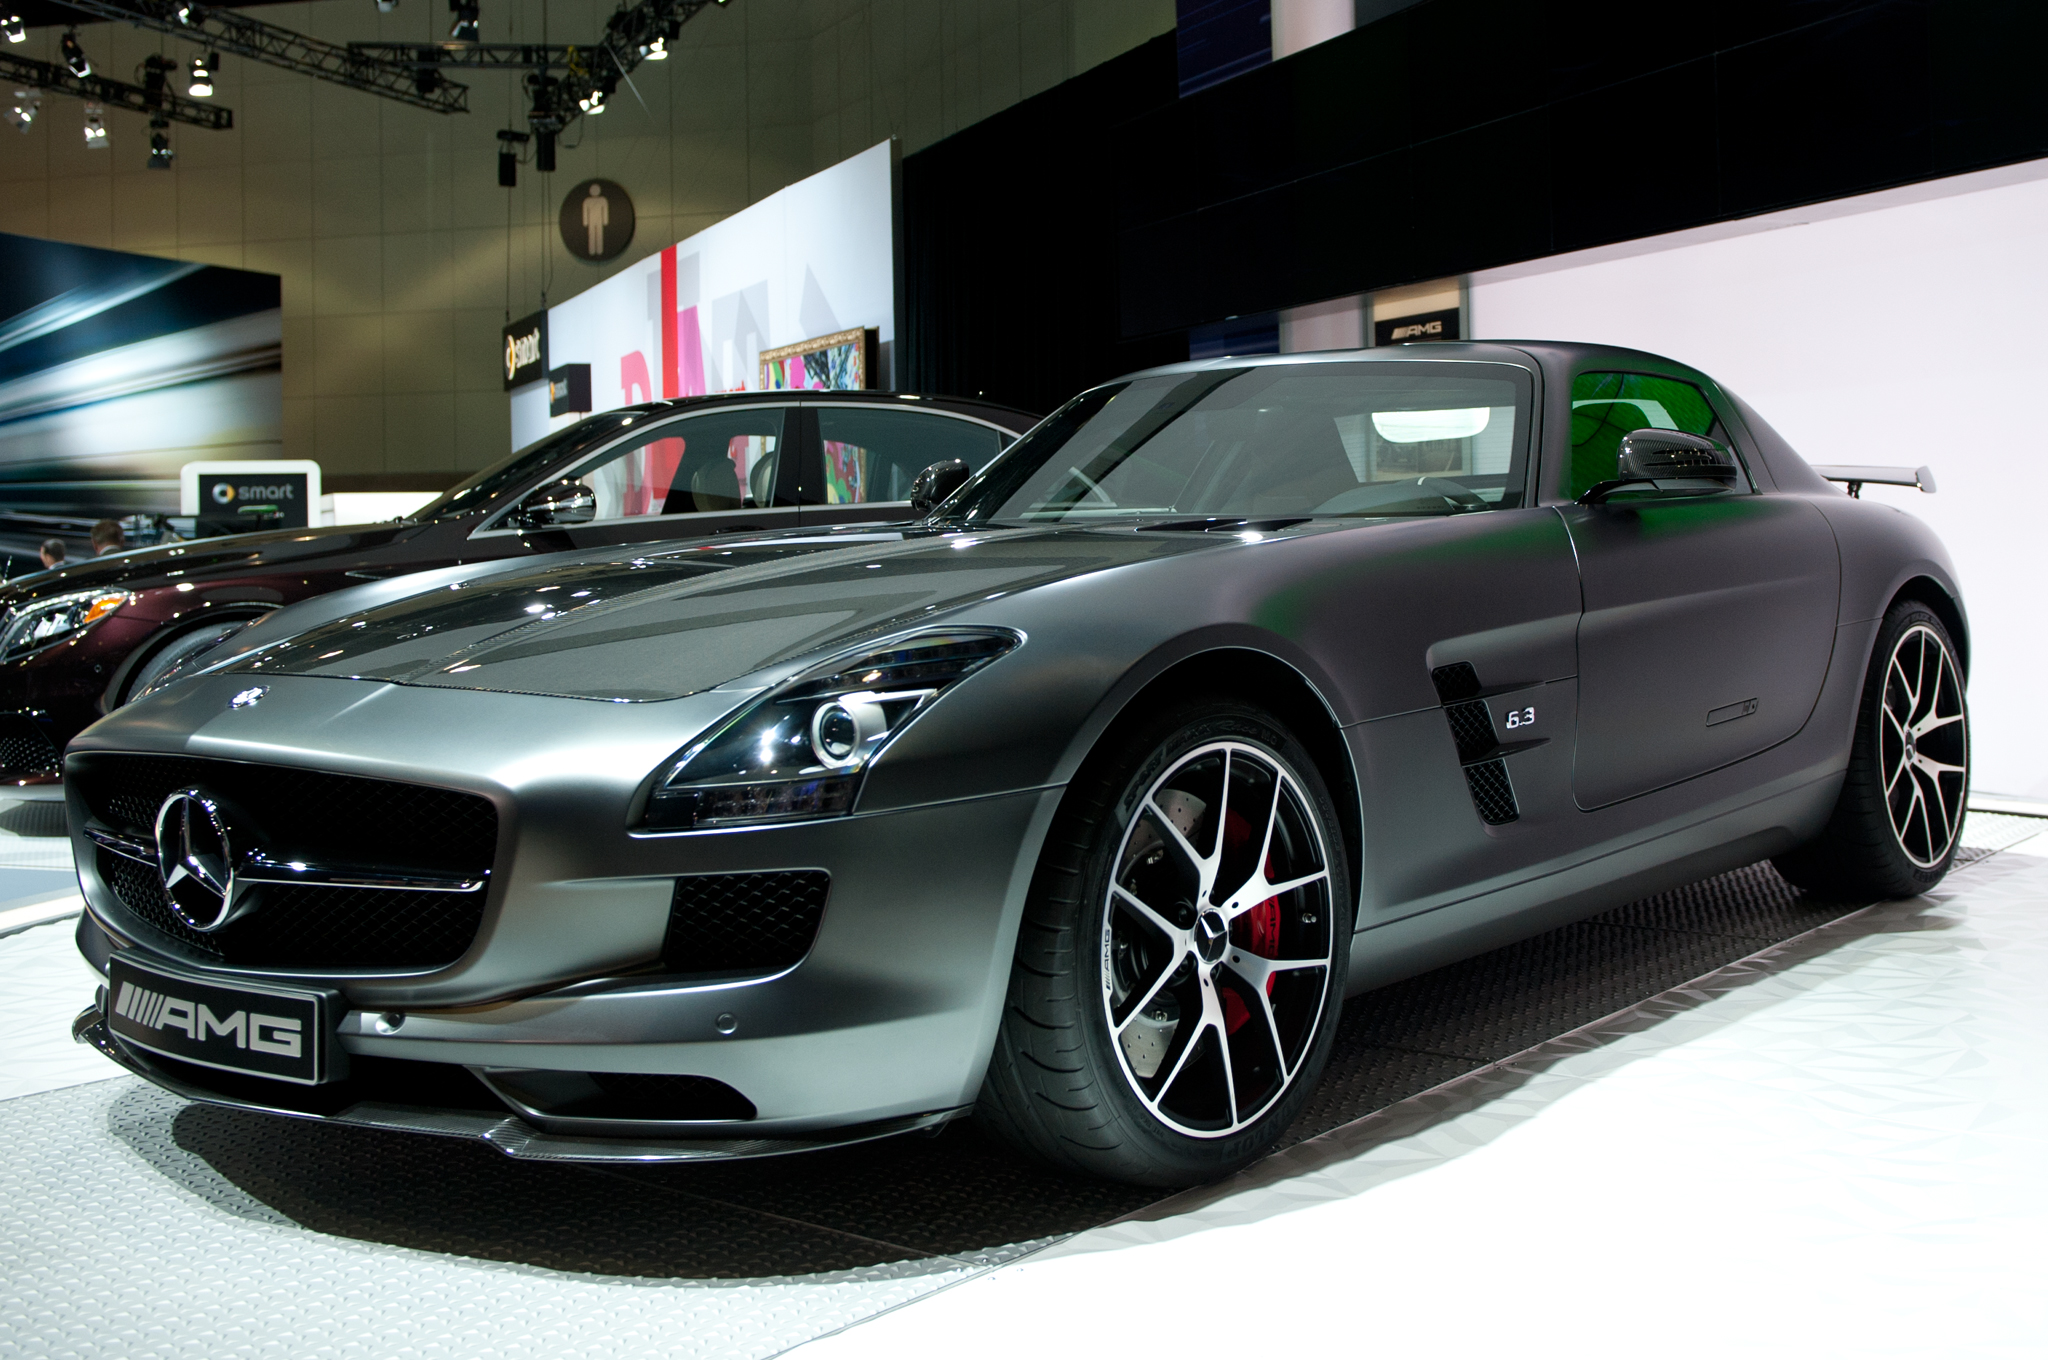 2014 mercedes benz sls amg gt information and photos momentcar. Black Bedroom Furniture Sets. Home Design Ideas